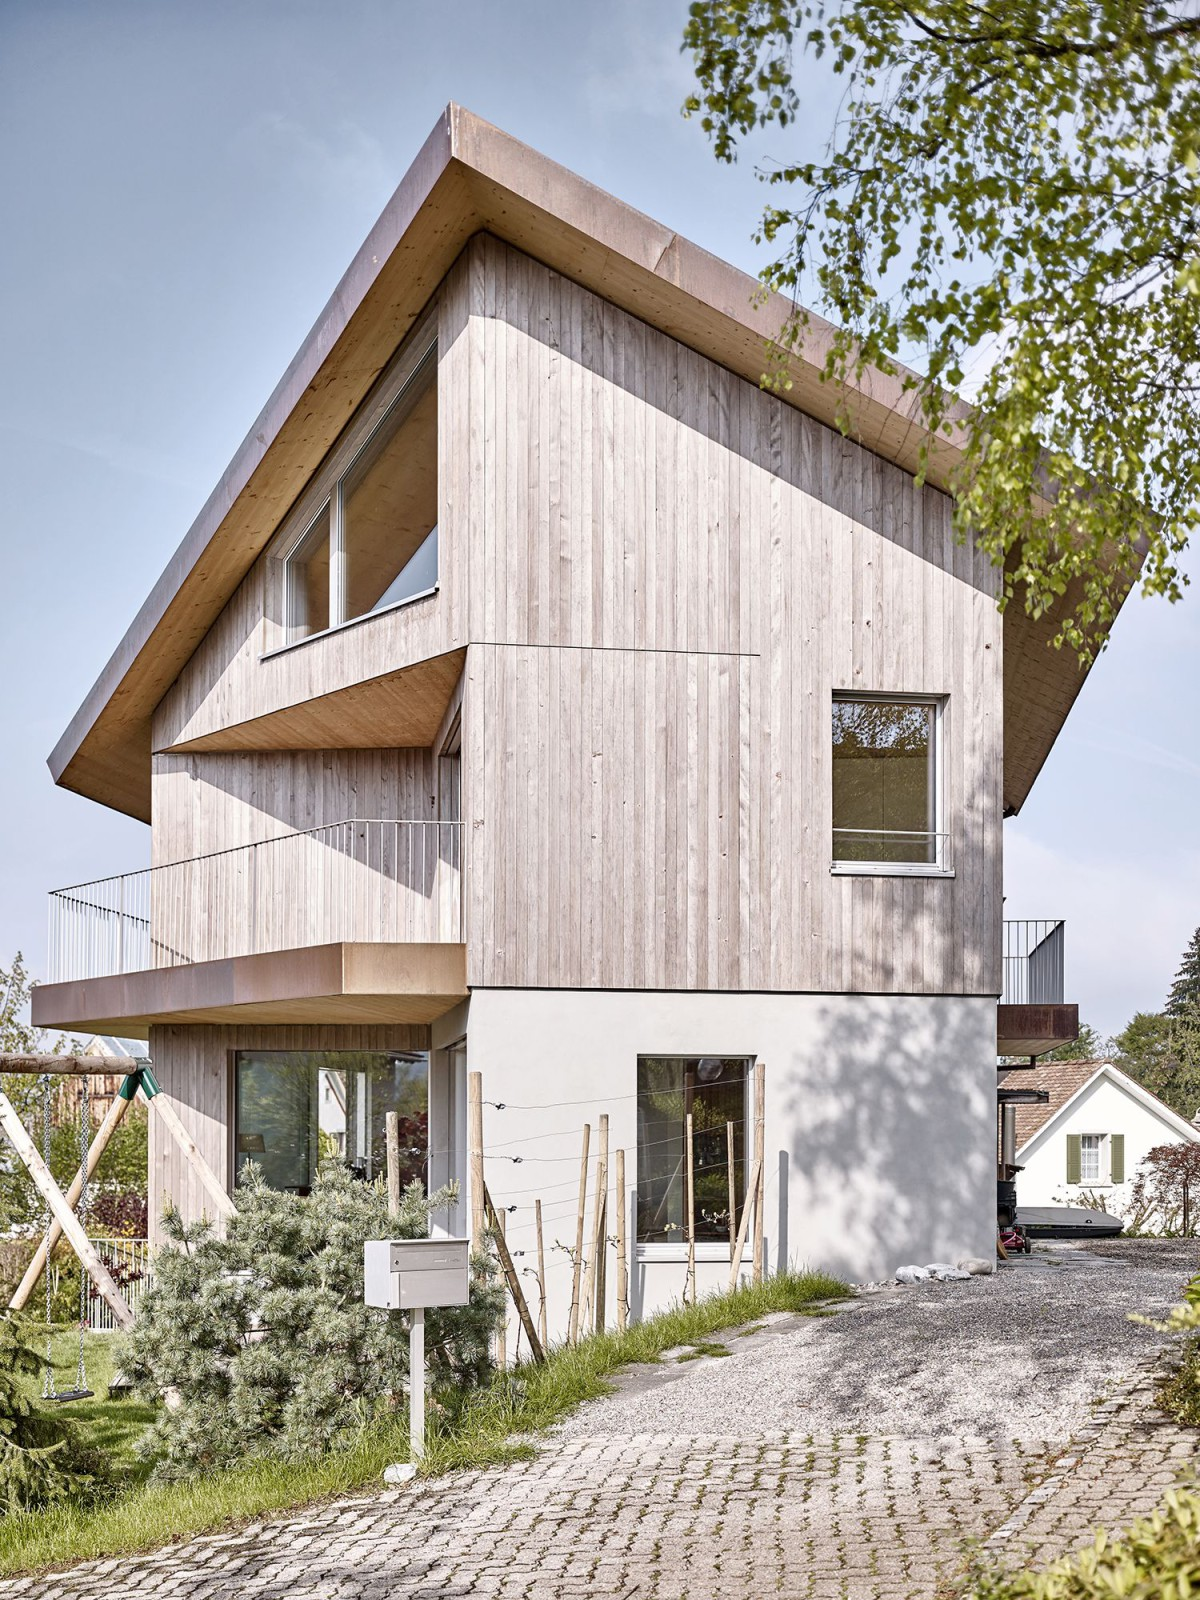 Zimmer schmidt architekten single family house staefa - Schmidt architekten ...